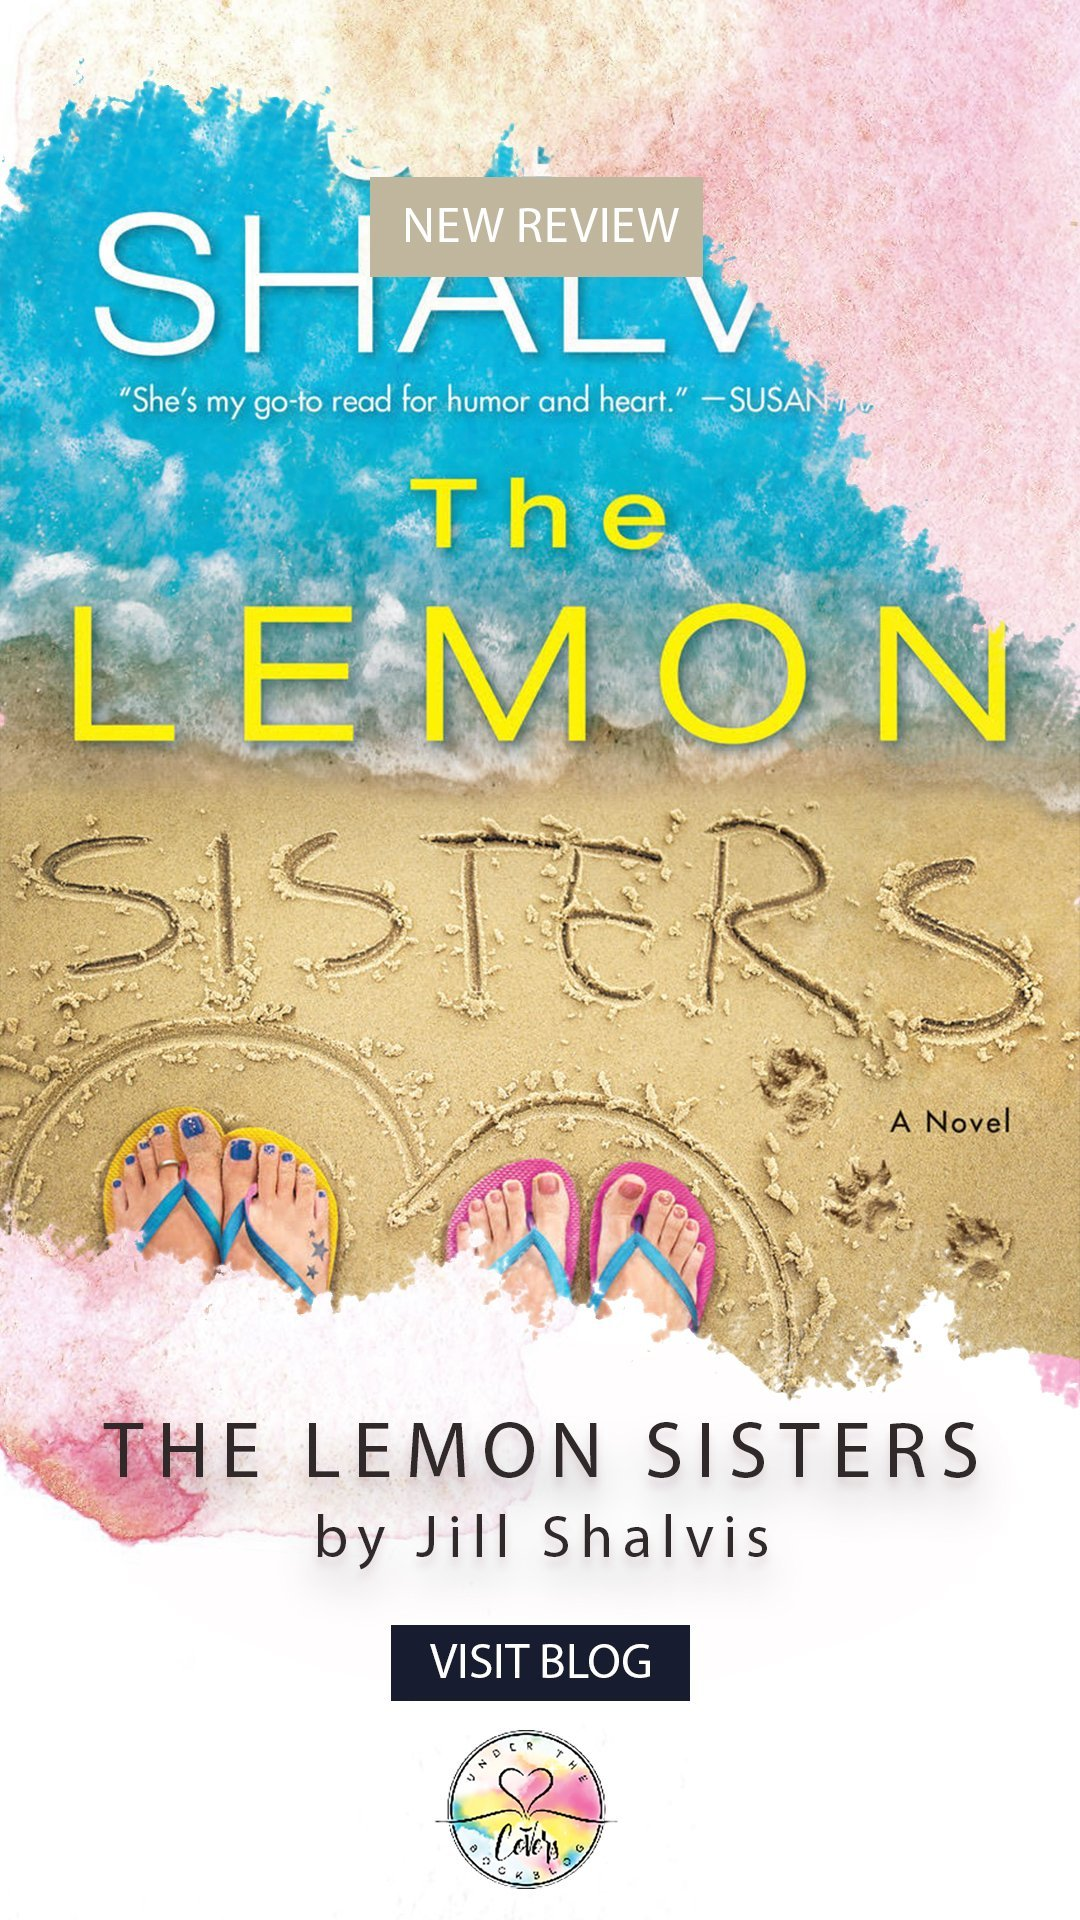 ARC Review: The Lemon Sisters by Jill Shalvis